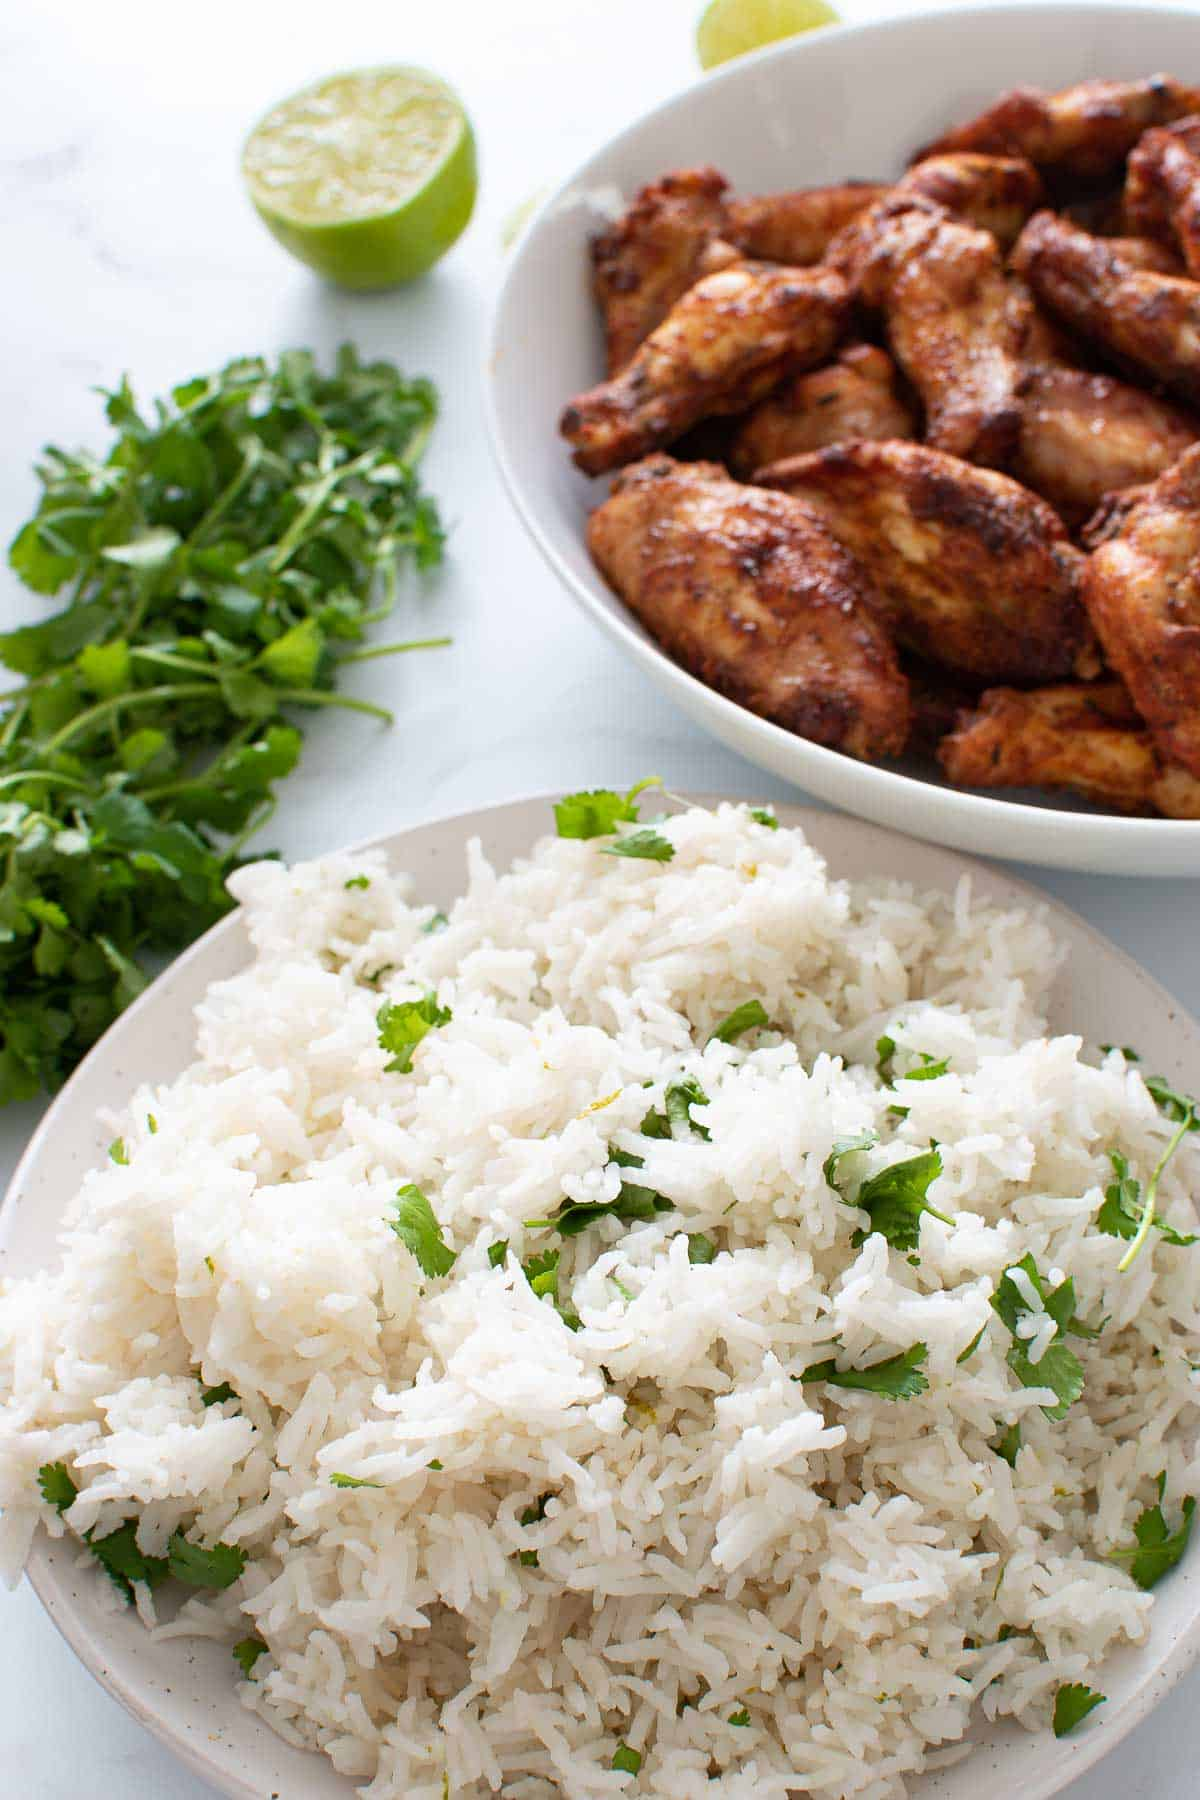 Lime and cilantro rice with chicken wings on the side.